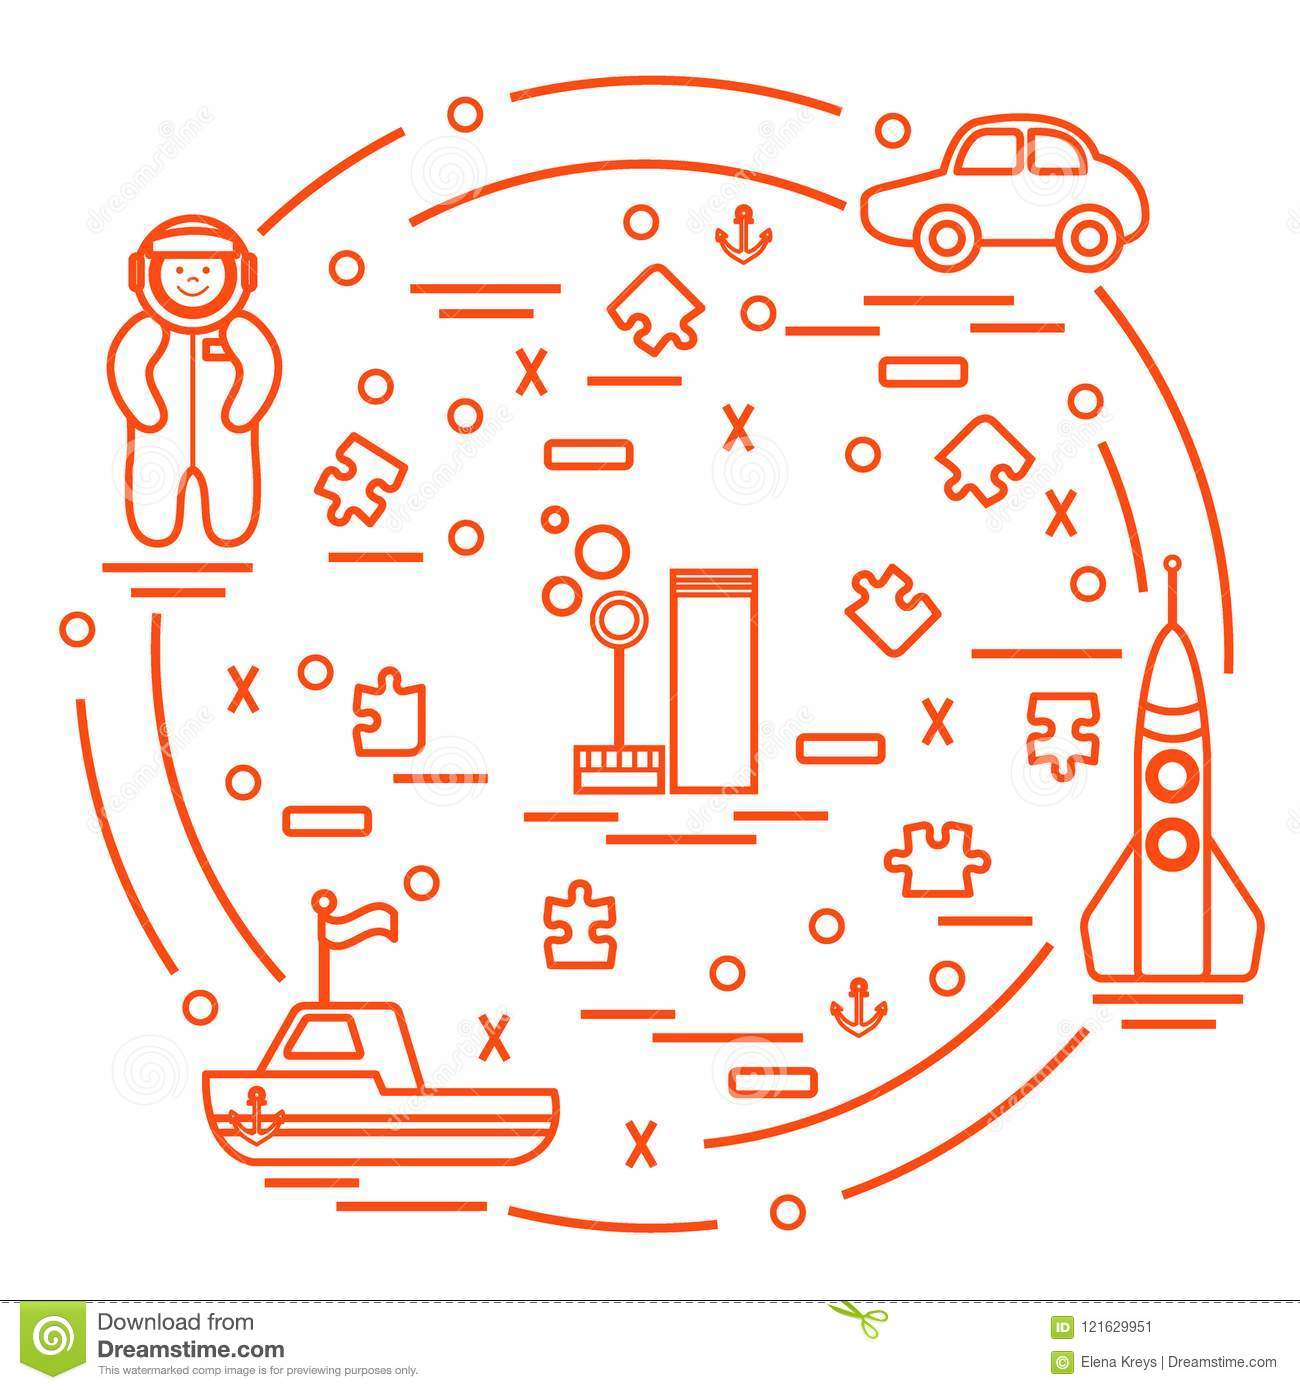 rocket ship diagram peripheral nerves labeled vector illustration kids toys objects astronaut car puzzles and other design element for postcard banner flyer or print